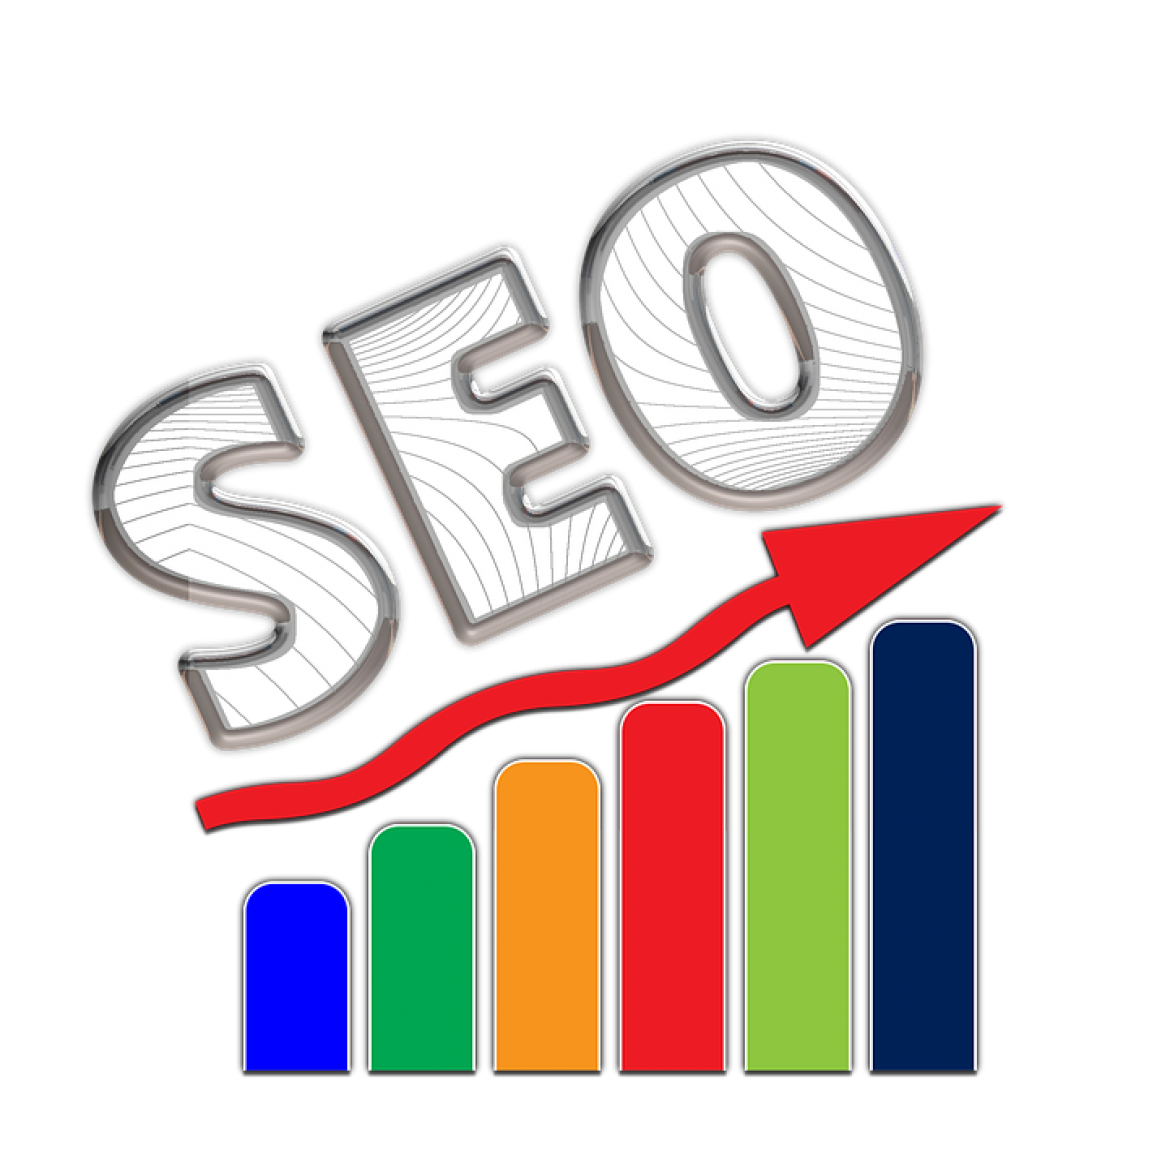 10 points to consider before hiring an SEO consultant for your local business